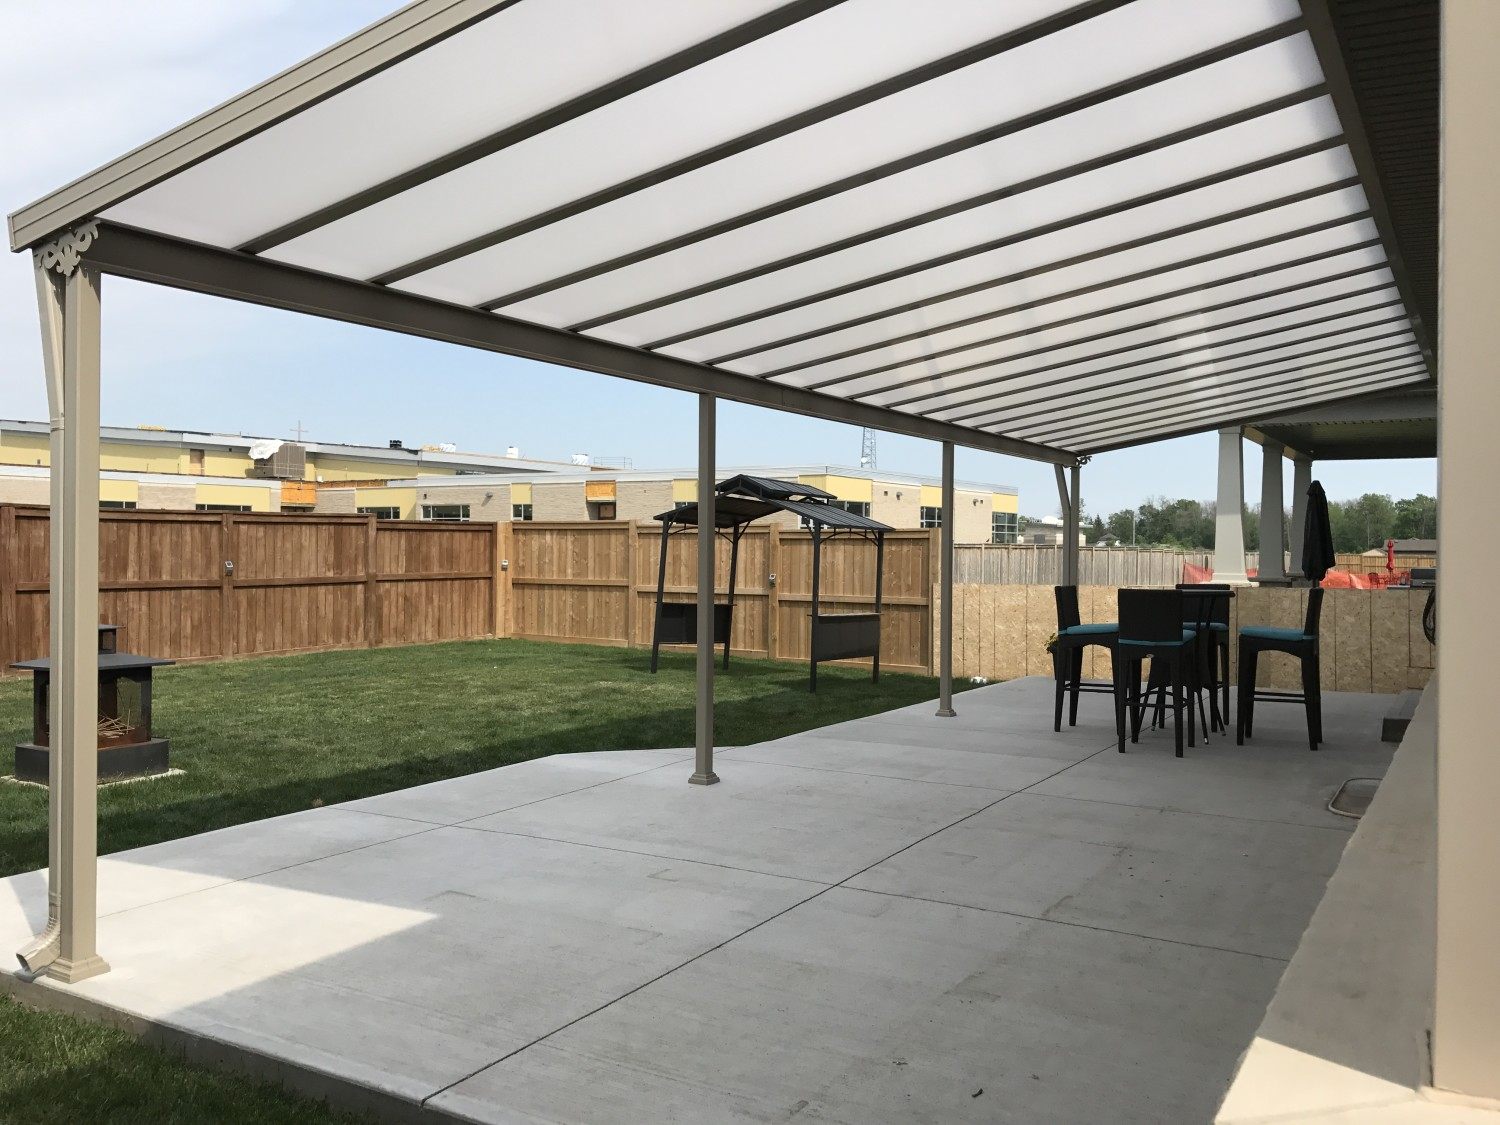 contractors aluminum img cover in sacramento covers area patio installers solid builders designers